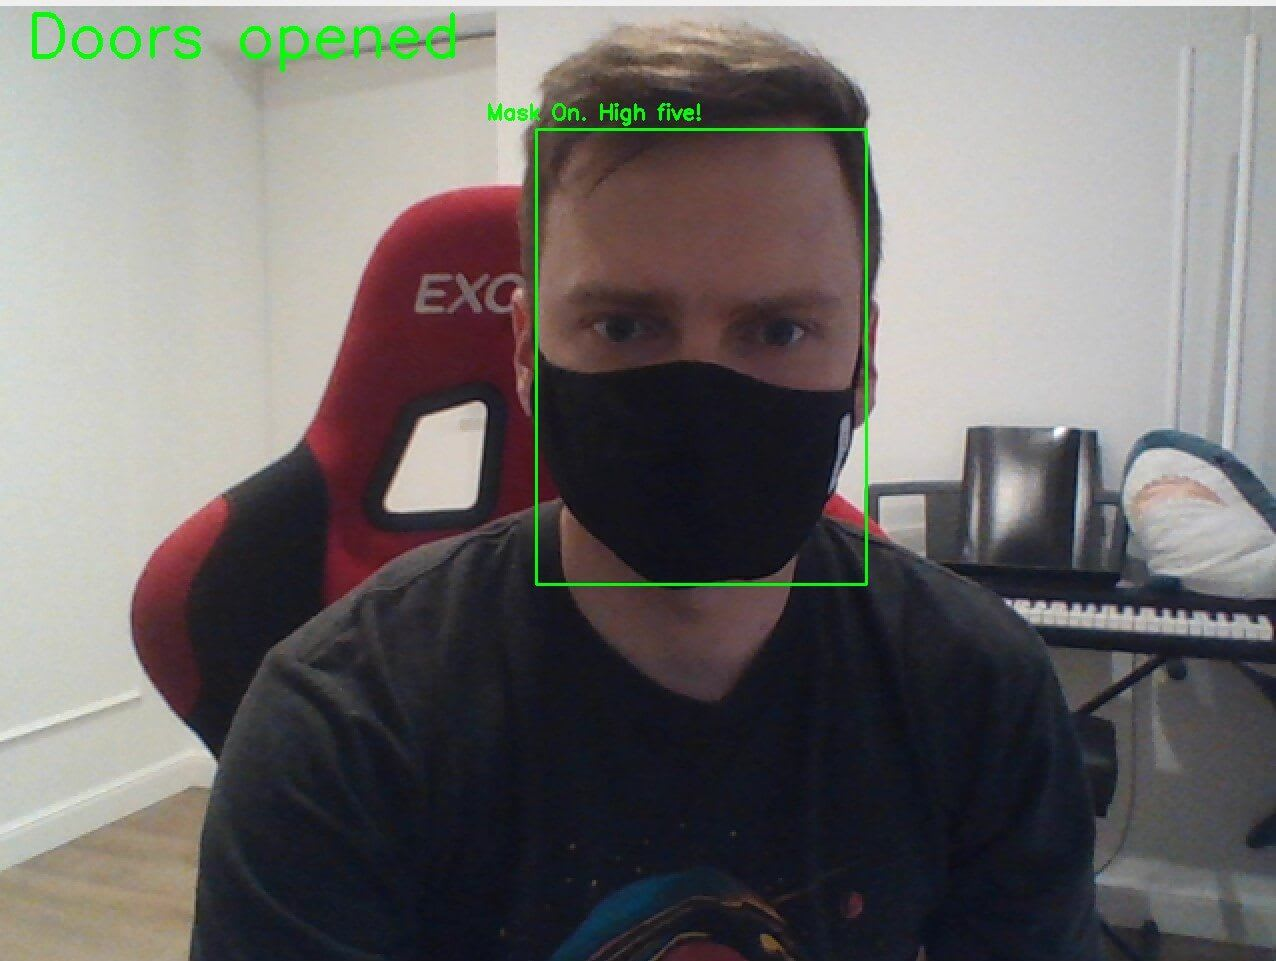 A picture of Piotr with his mask on and the algorithm successfully detecting it